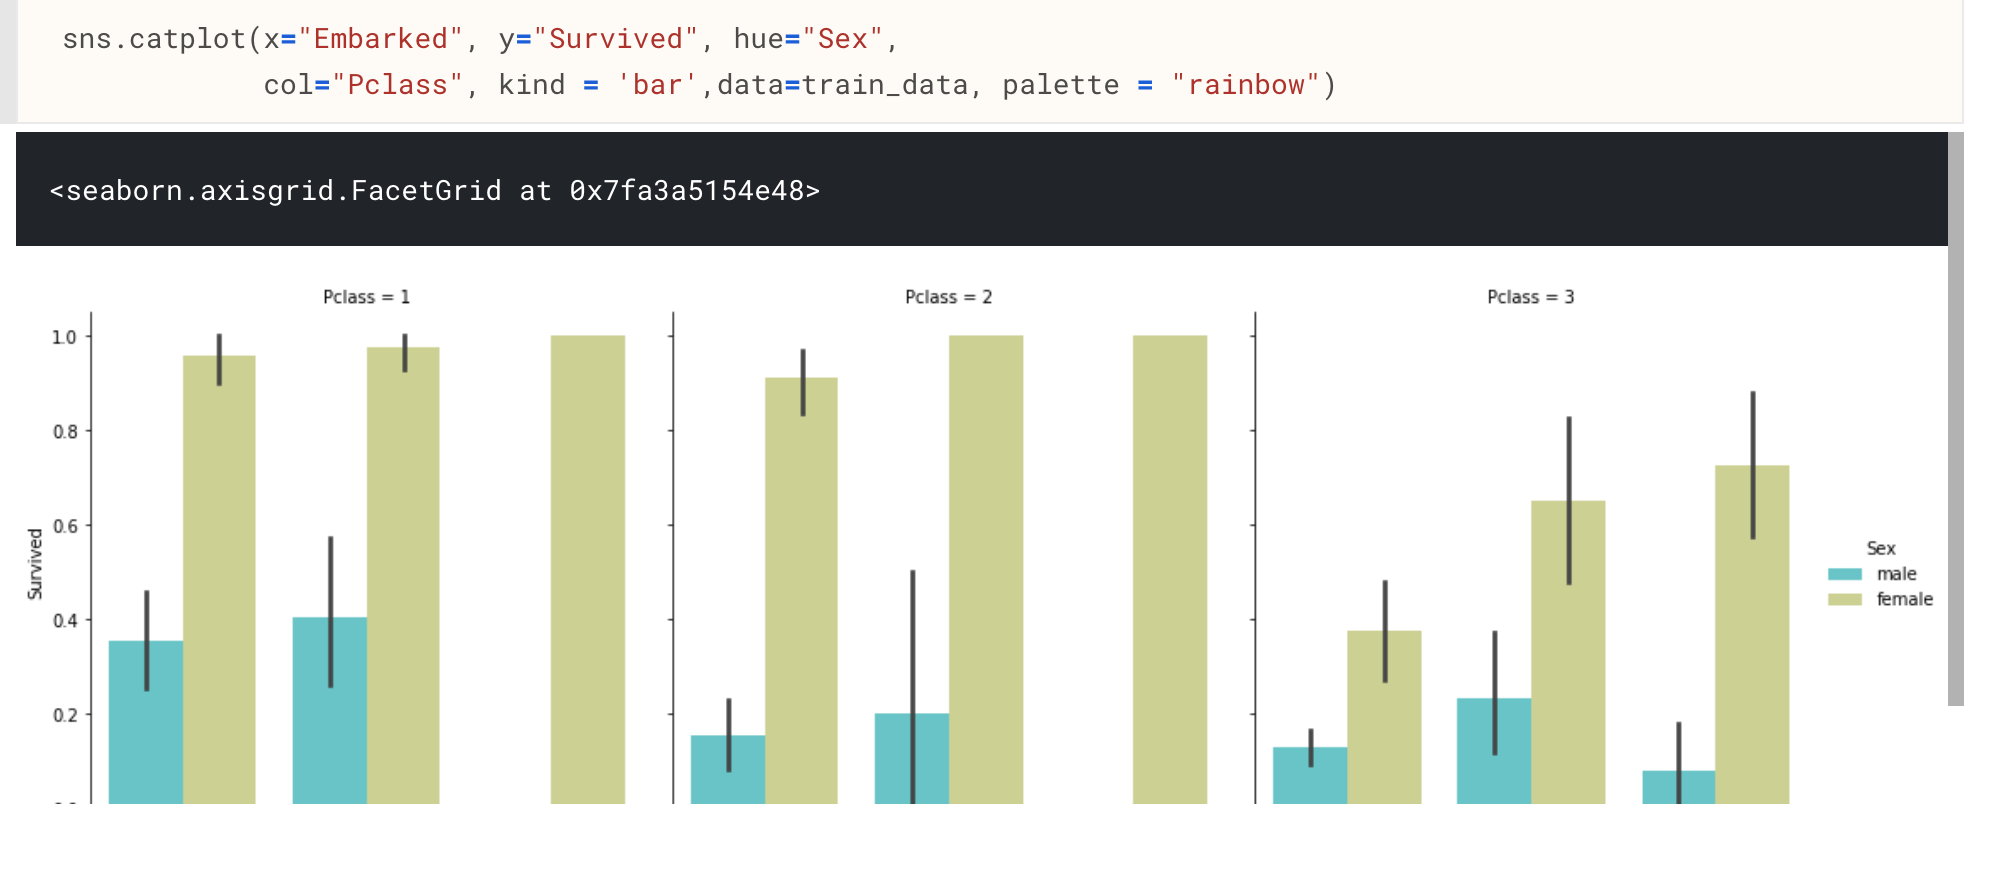 Exploratory Data Analysis (EDA) techniques for kaggle competition